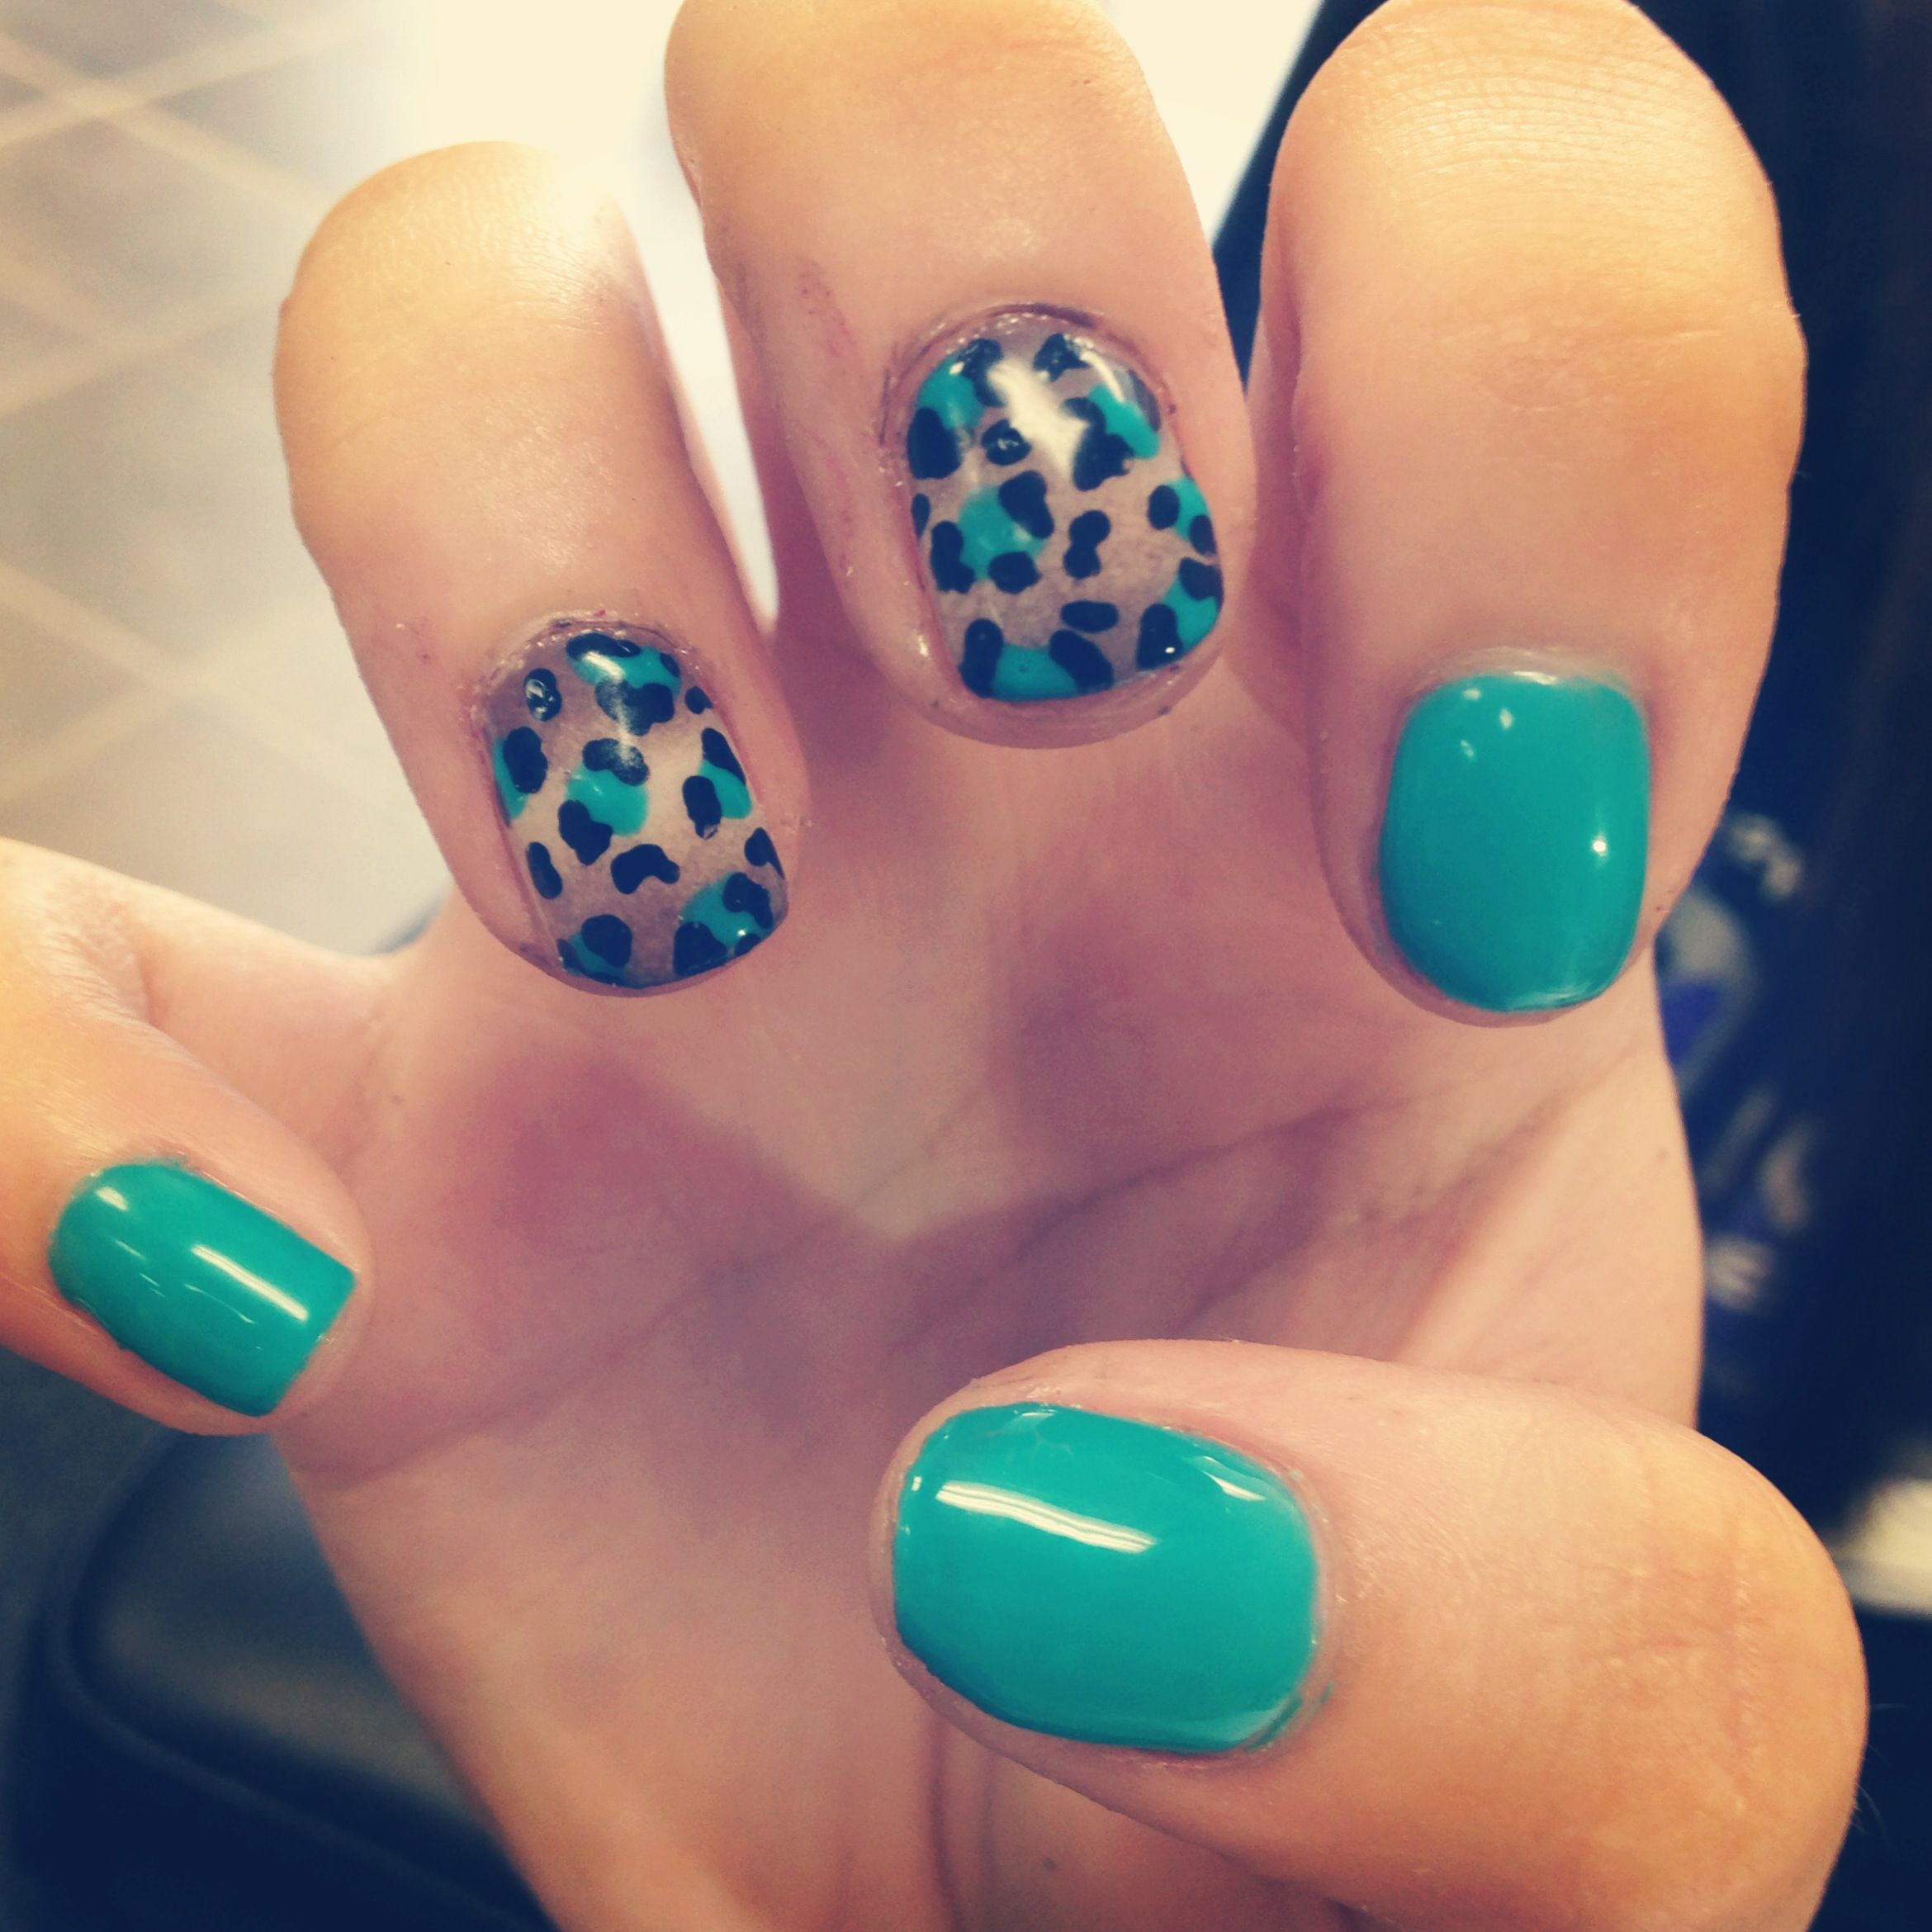 cheetah nail designs..kinda cool-maybe for a toe design | Stuff to ...